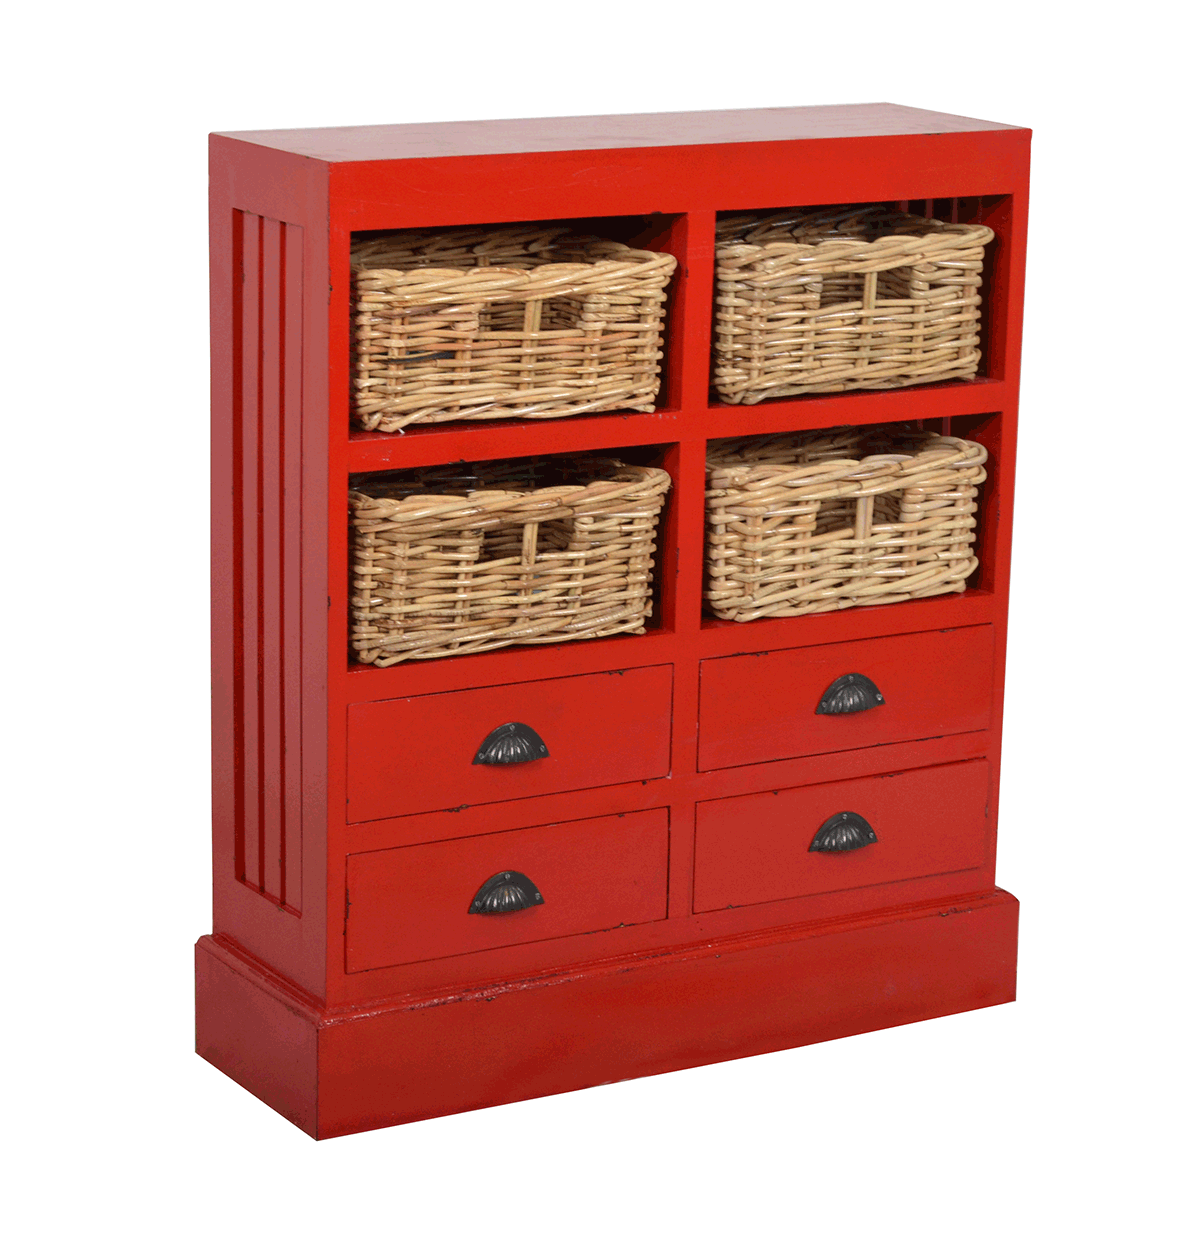 20+ Red Metal Storage Cabinet - Kitchen Design and Layout Ideas Check more at   sc 1 st  Pinterest & 20+ Red Metal Storage Cabinet - Kitchen Design and Layout Ideas ...